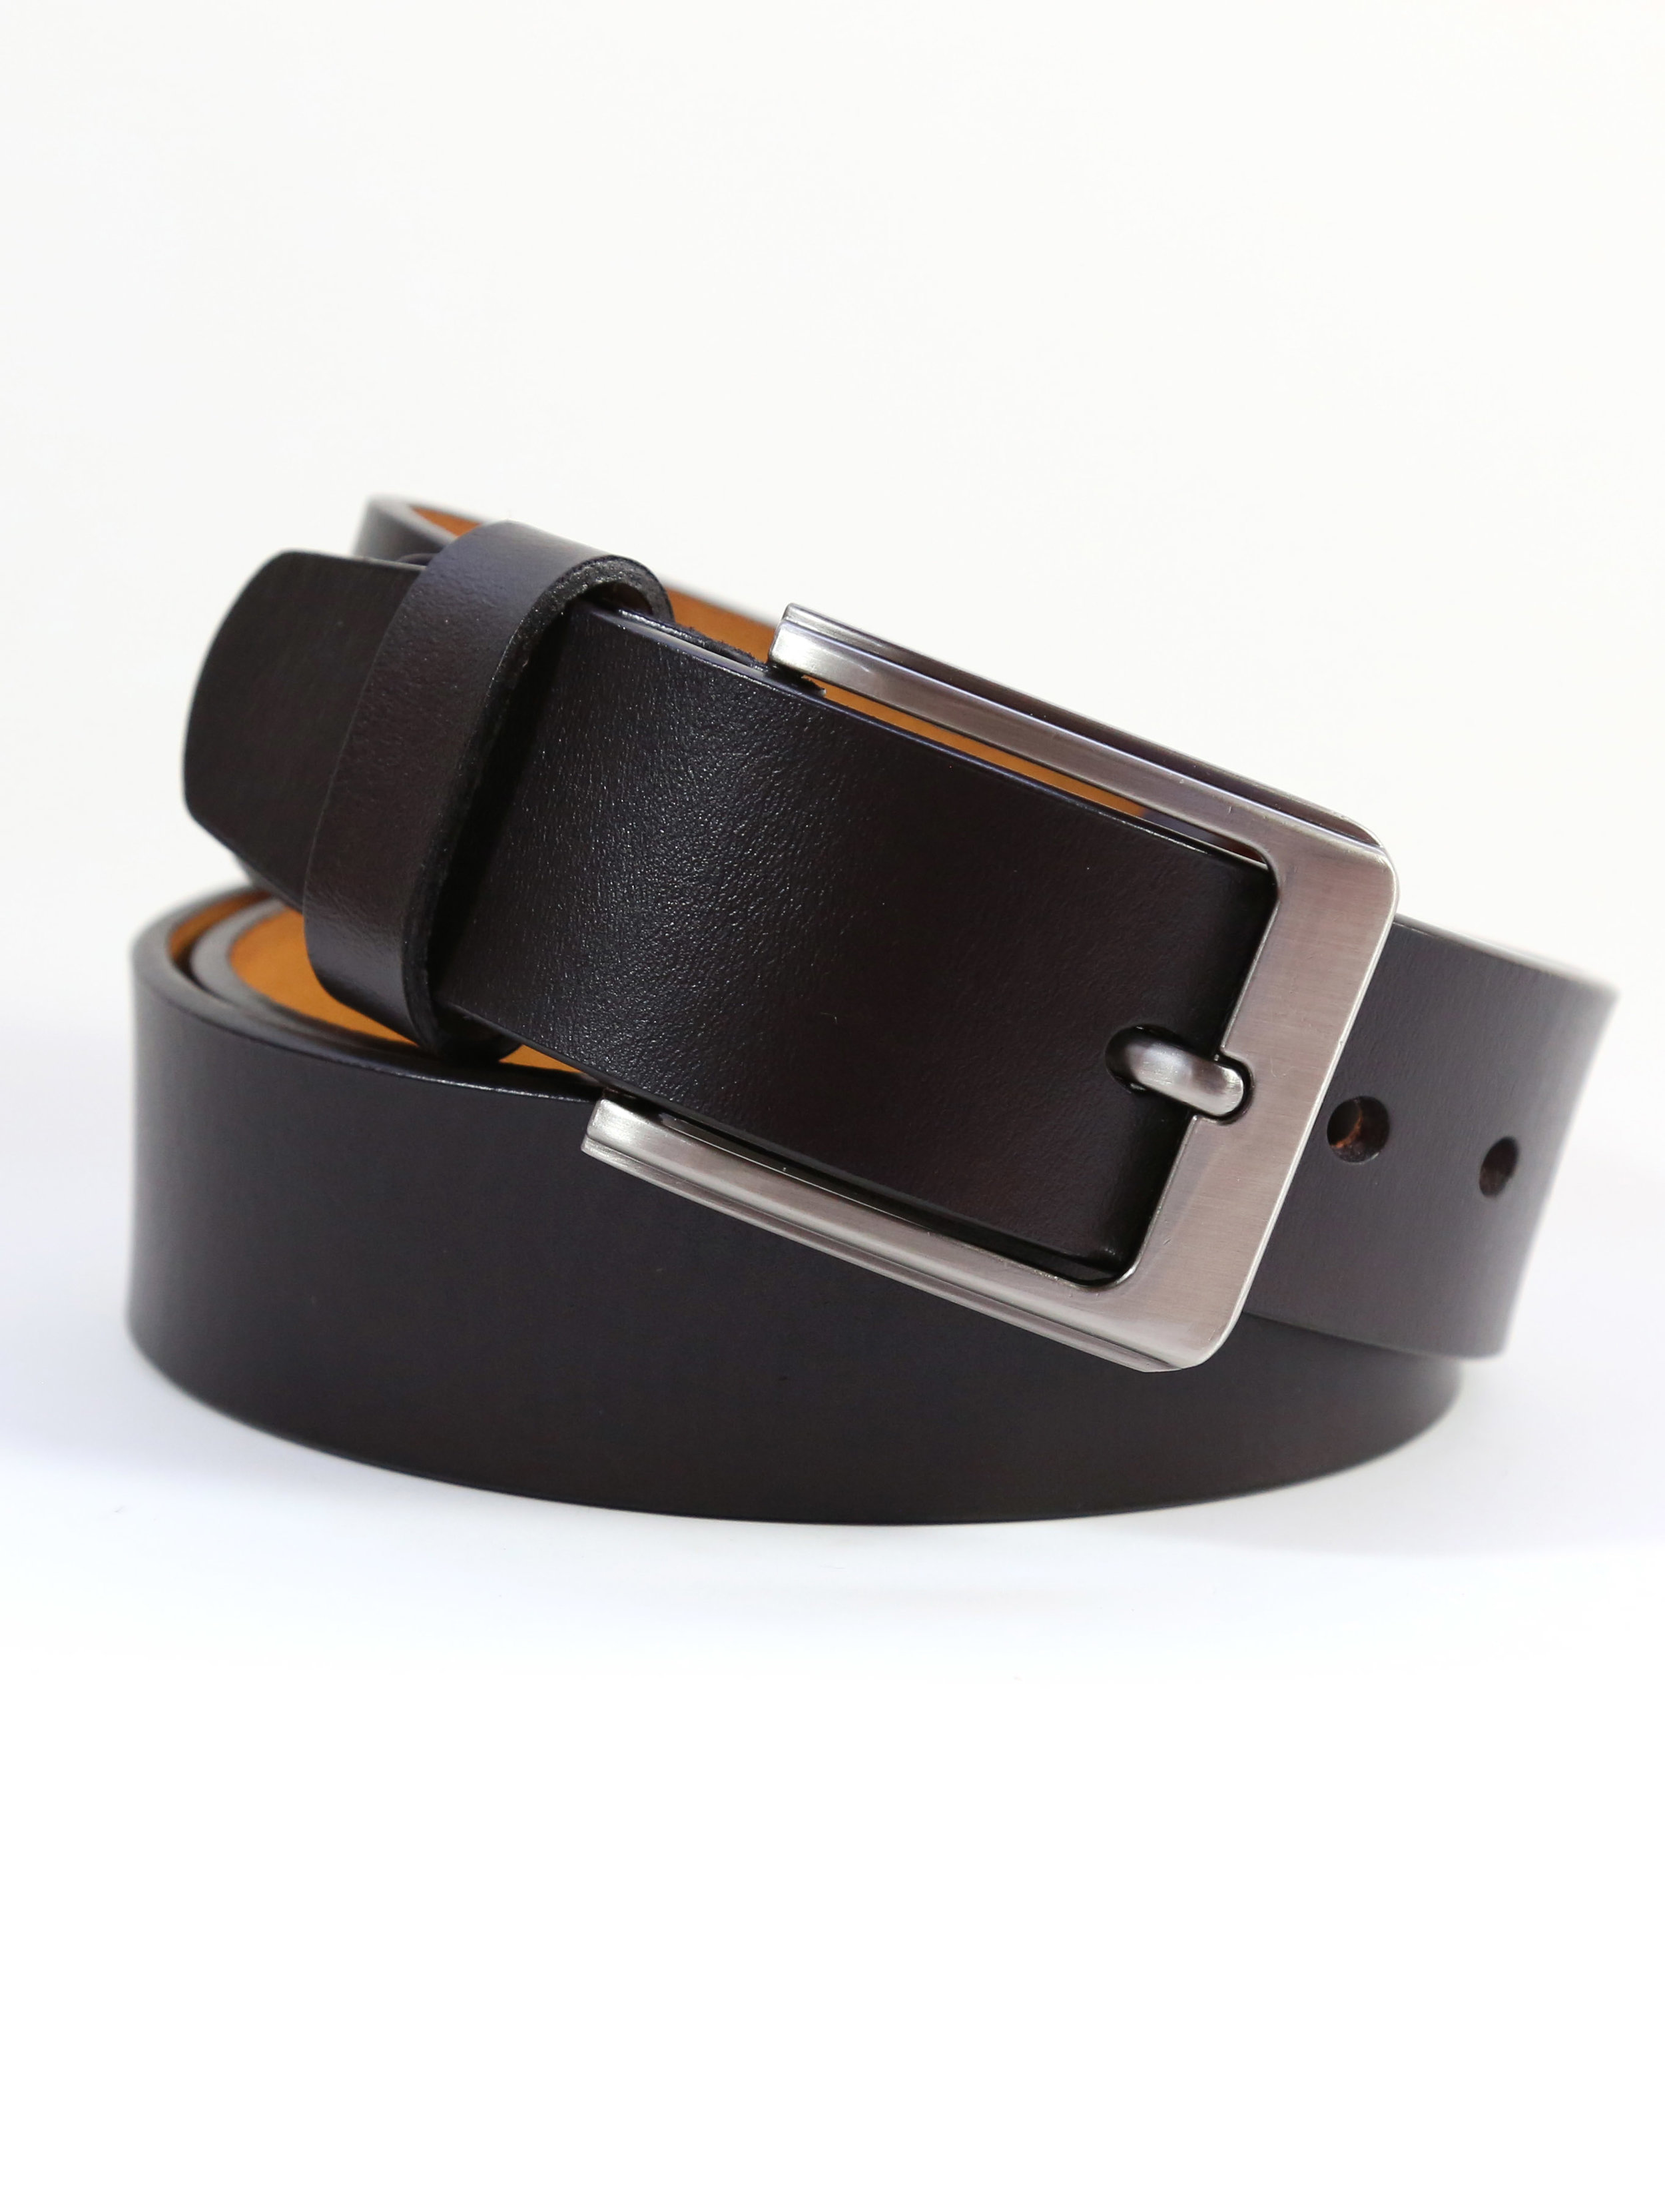 Belts - Stunning Leather Belts with options for finish and buckle. A beautiful addition to your wardrobe.